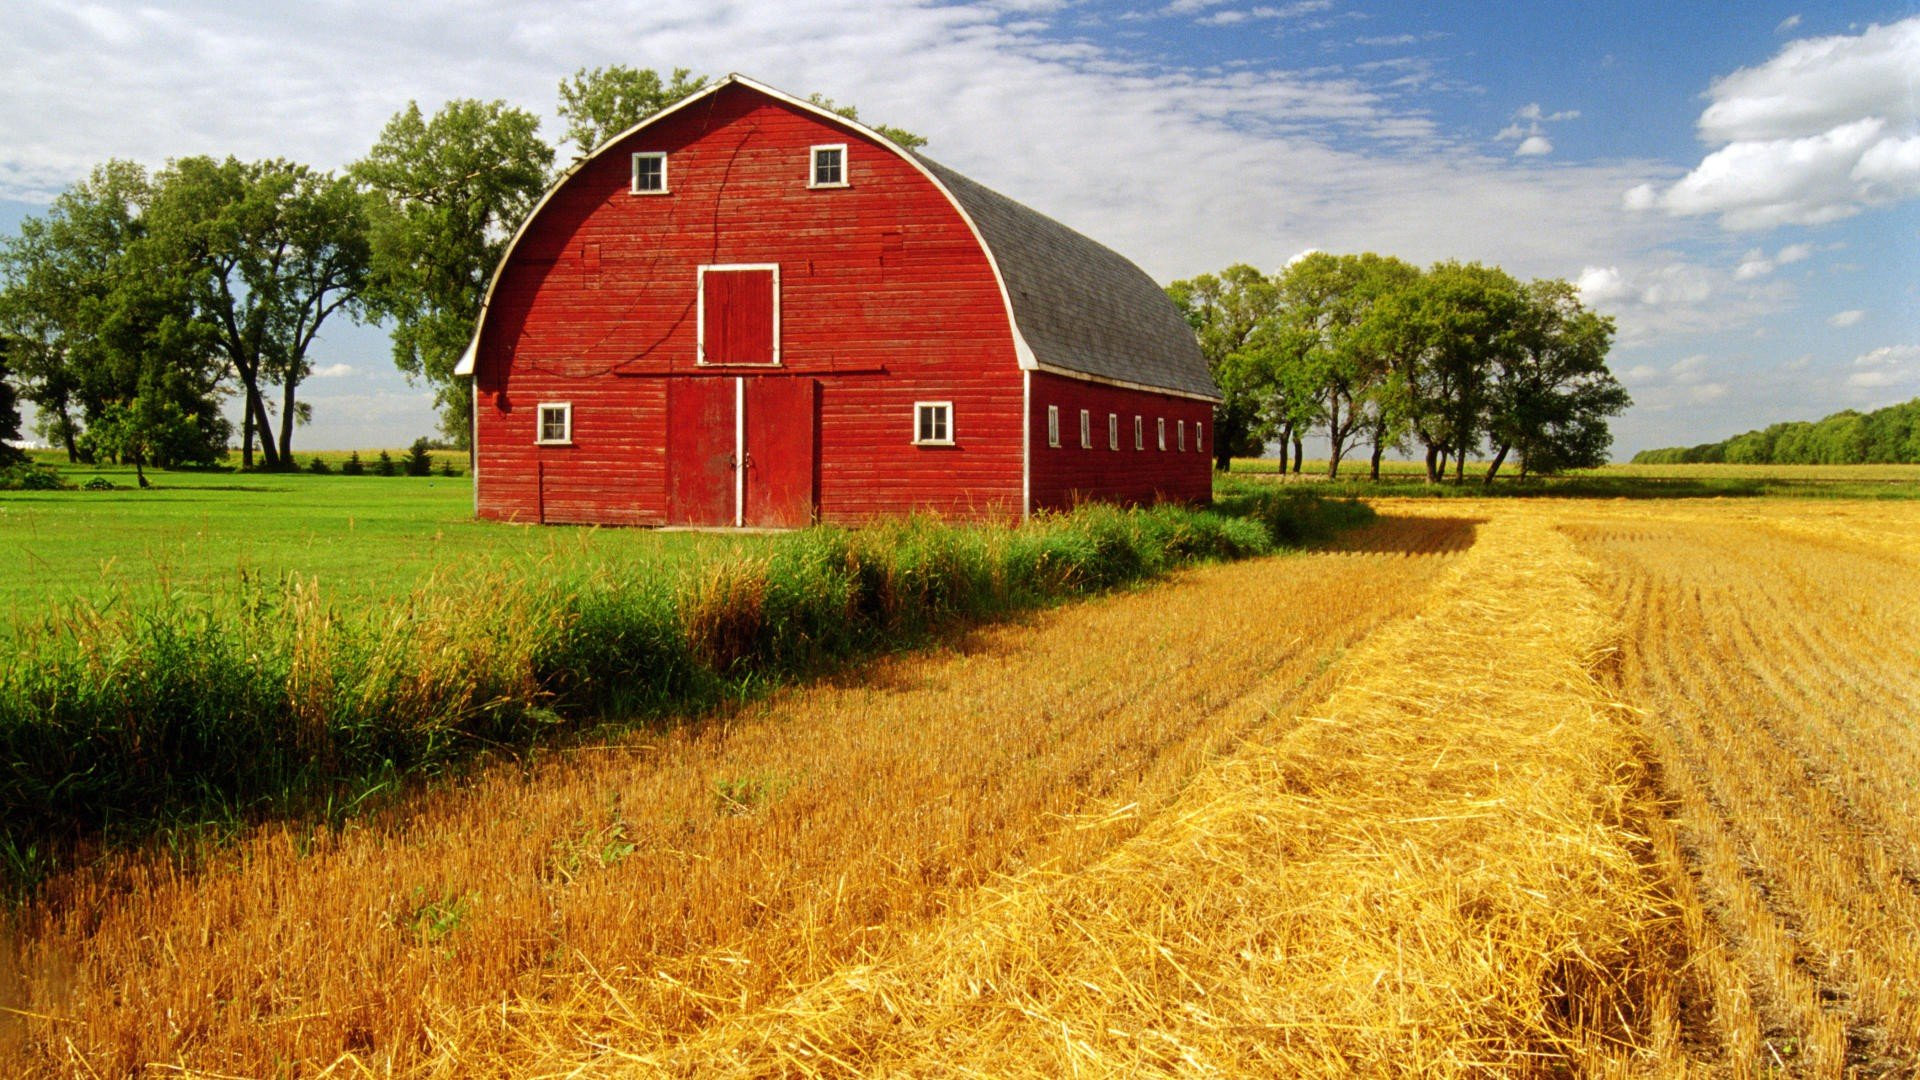 Free Download Barn Wallpaper ID494791 Hd 1920x1080 For PC